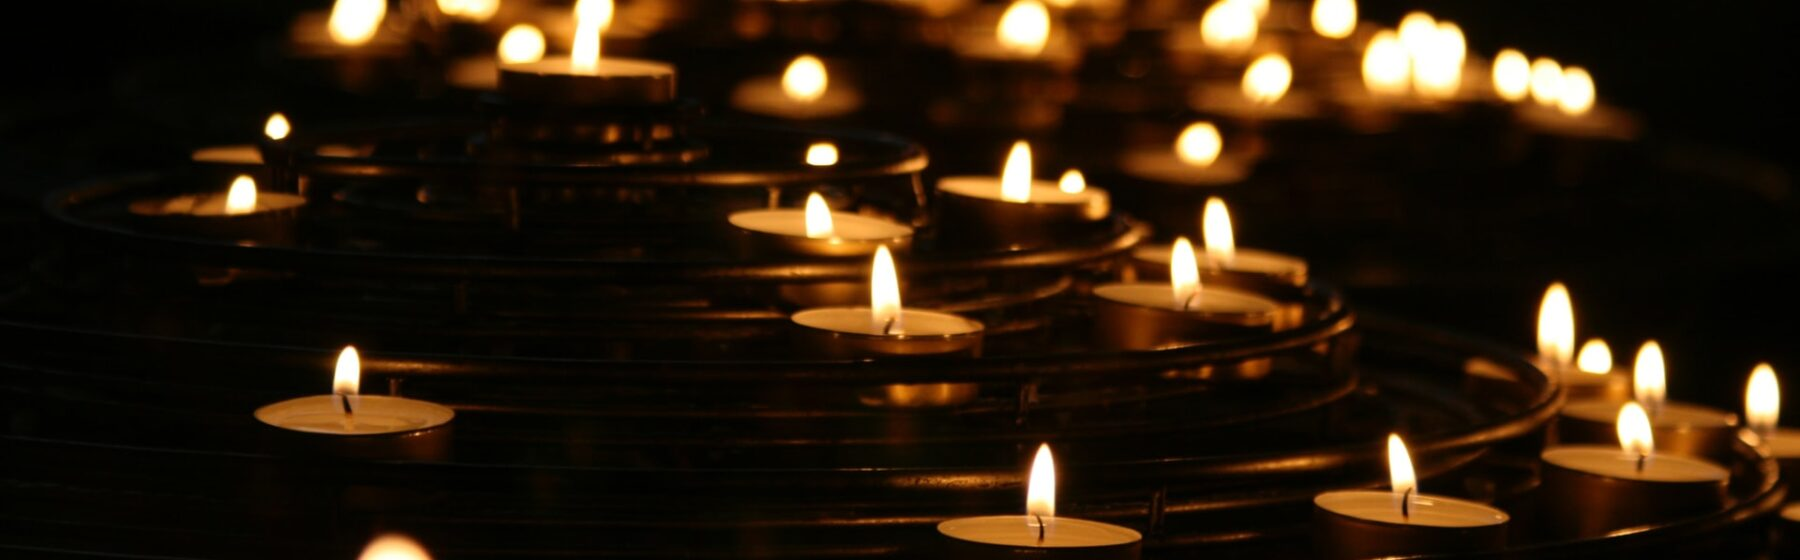 A multitude of candle flames shine against a dark background.